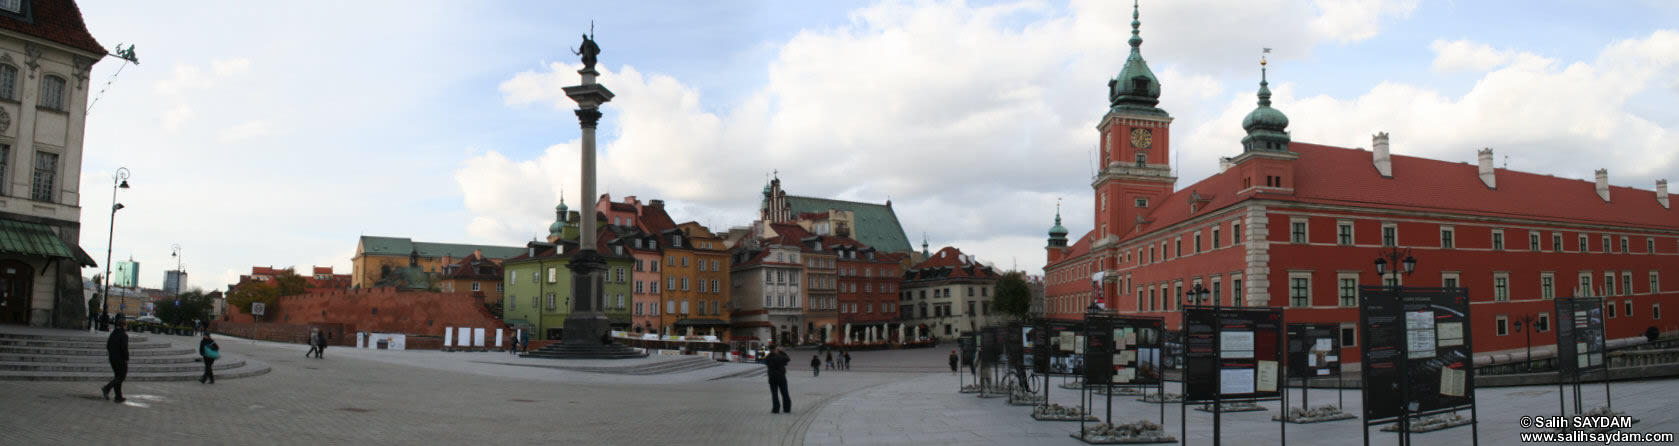 Old Town Panorama 08 (Castle Square, Warsaw, Poland)